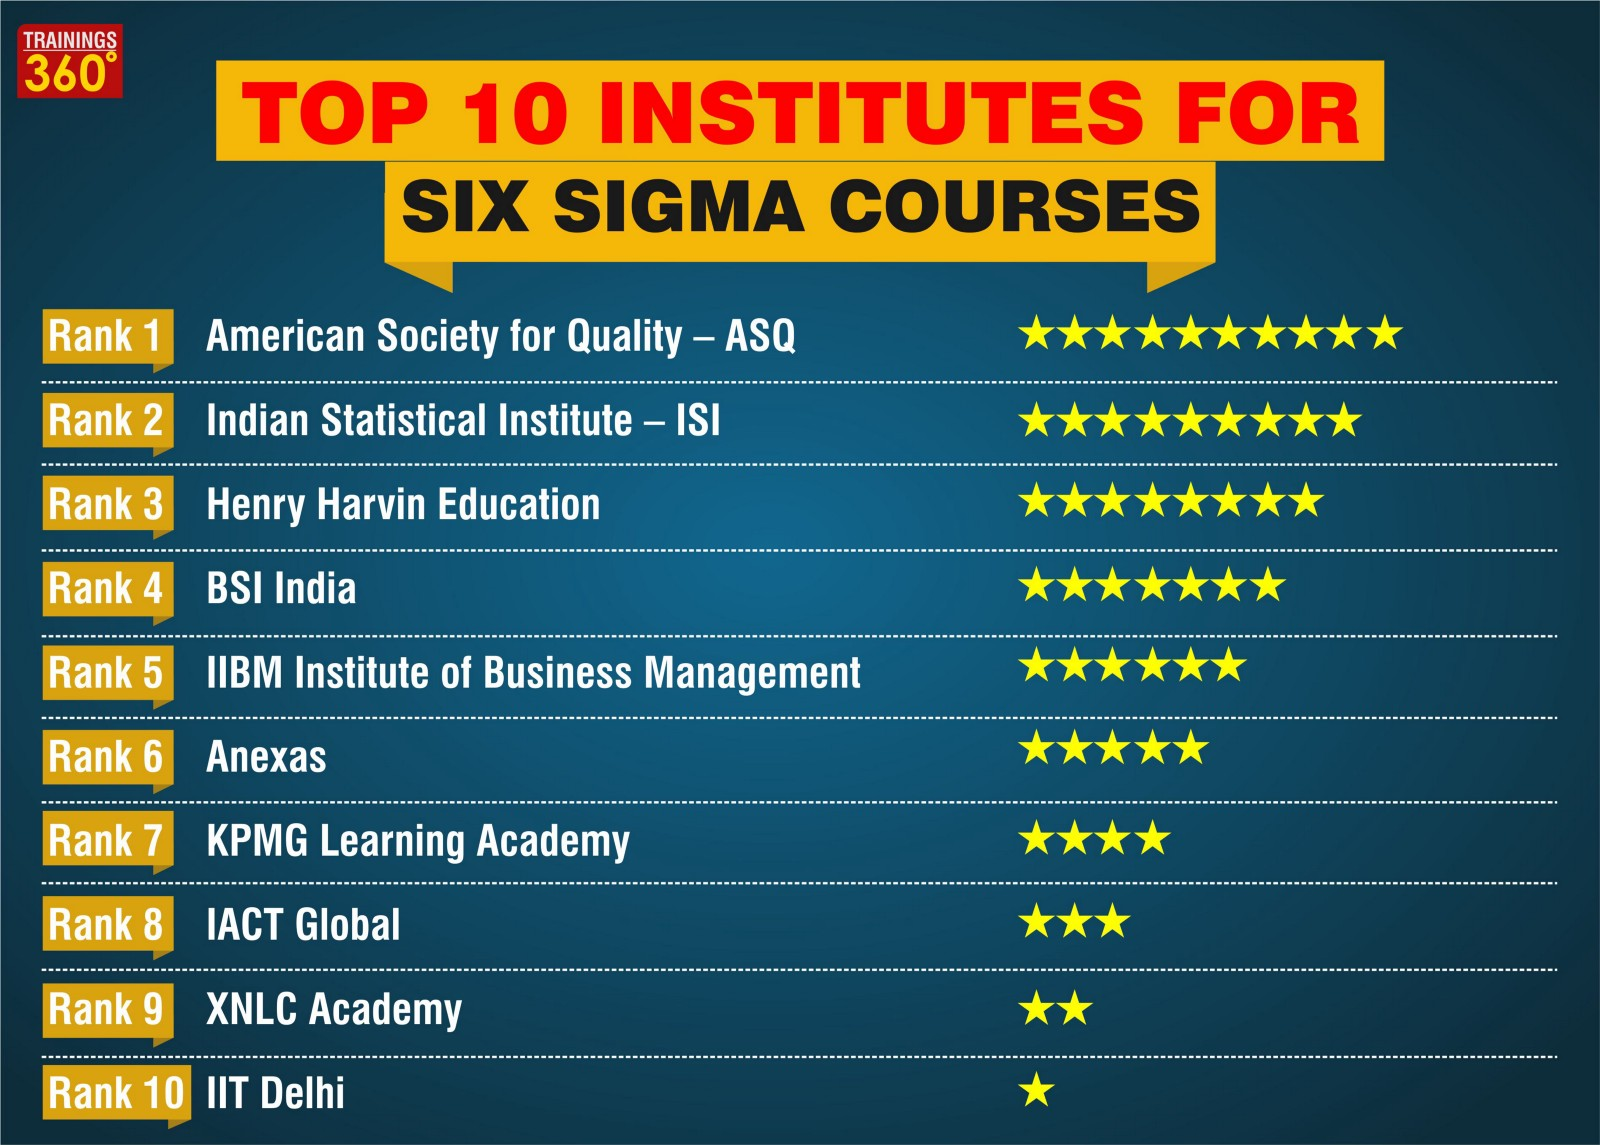 Top 5 Six Sigma Institutes In Delhi Trainings360 Medium